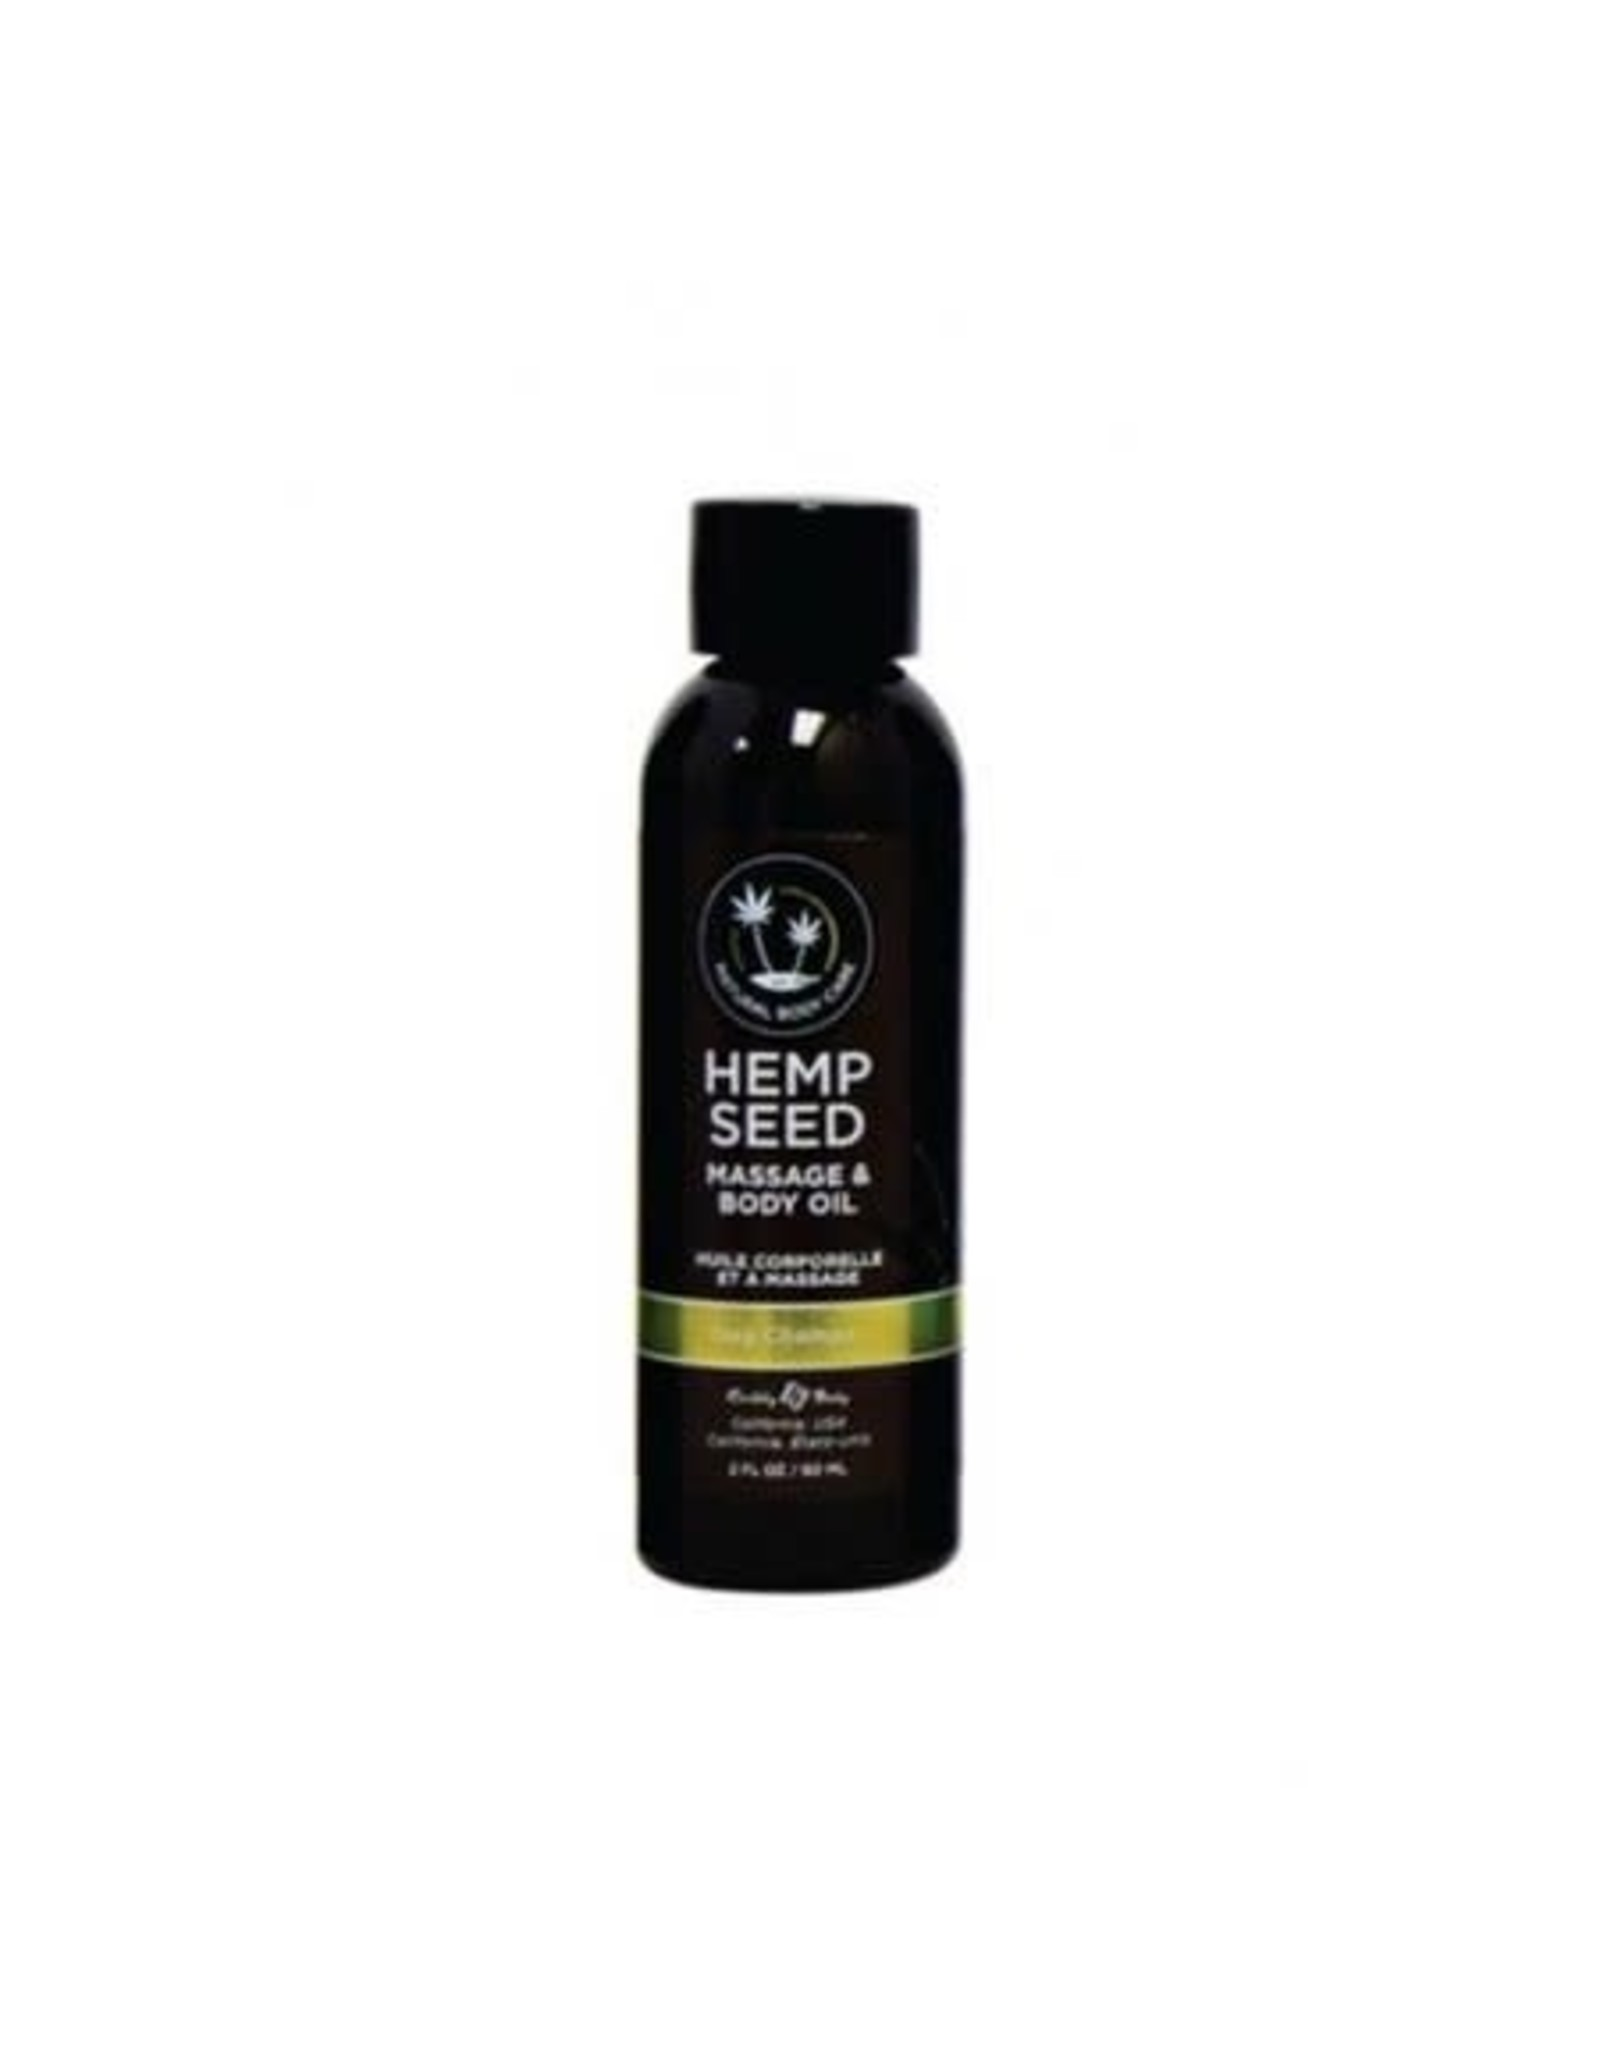 EARTHLY BODIES - HEMP SEED MASSAGE OIL - NAG CHAMPA 2oz